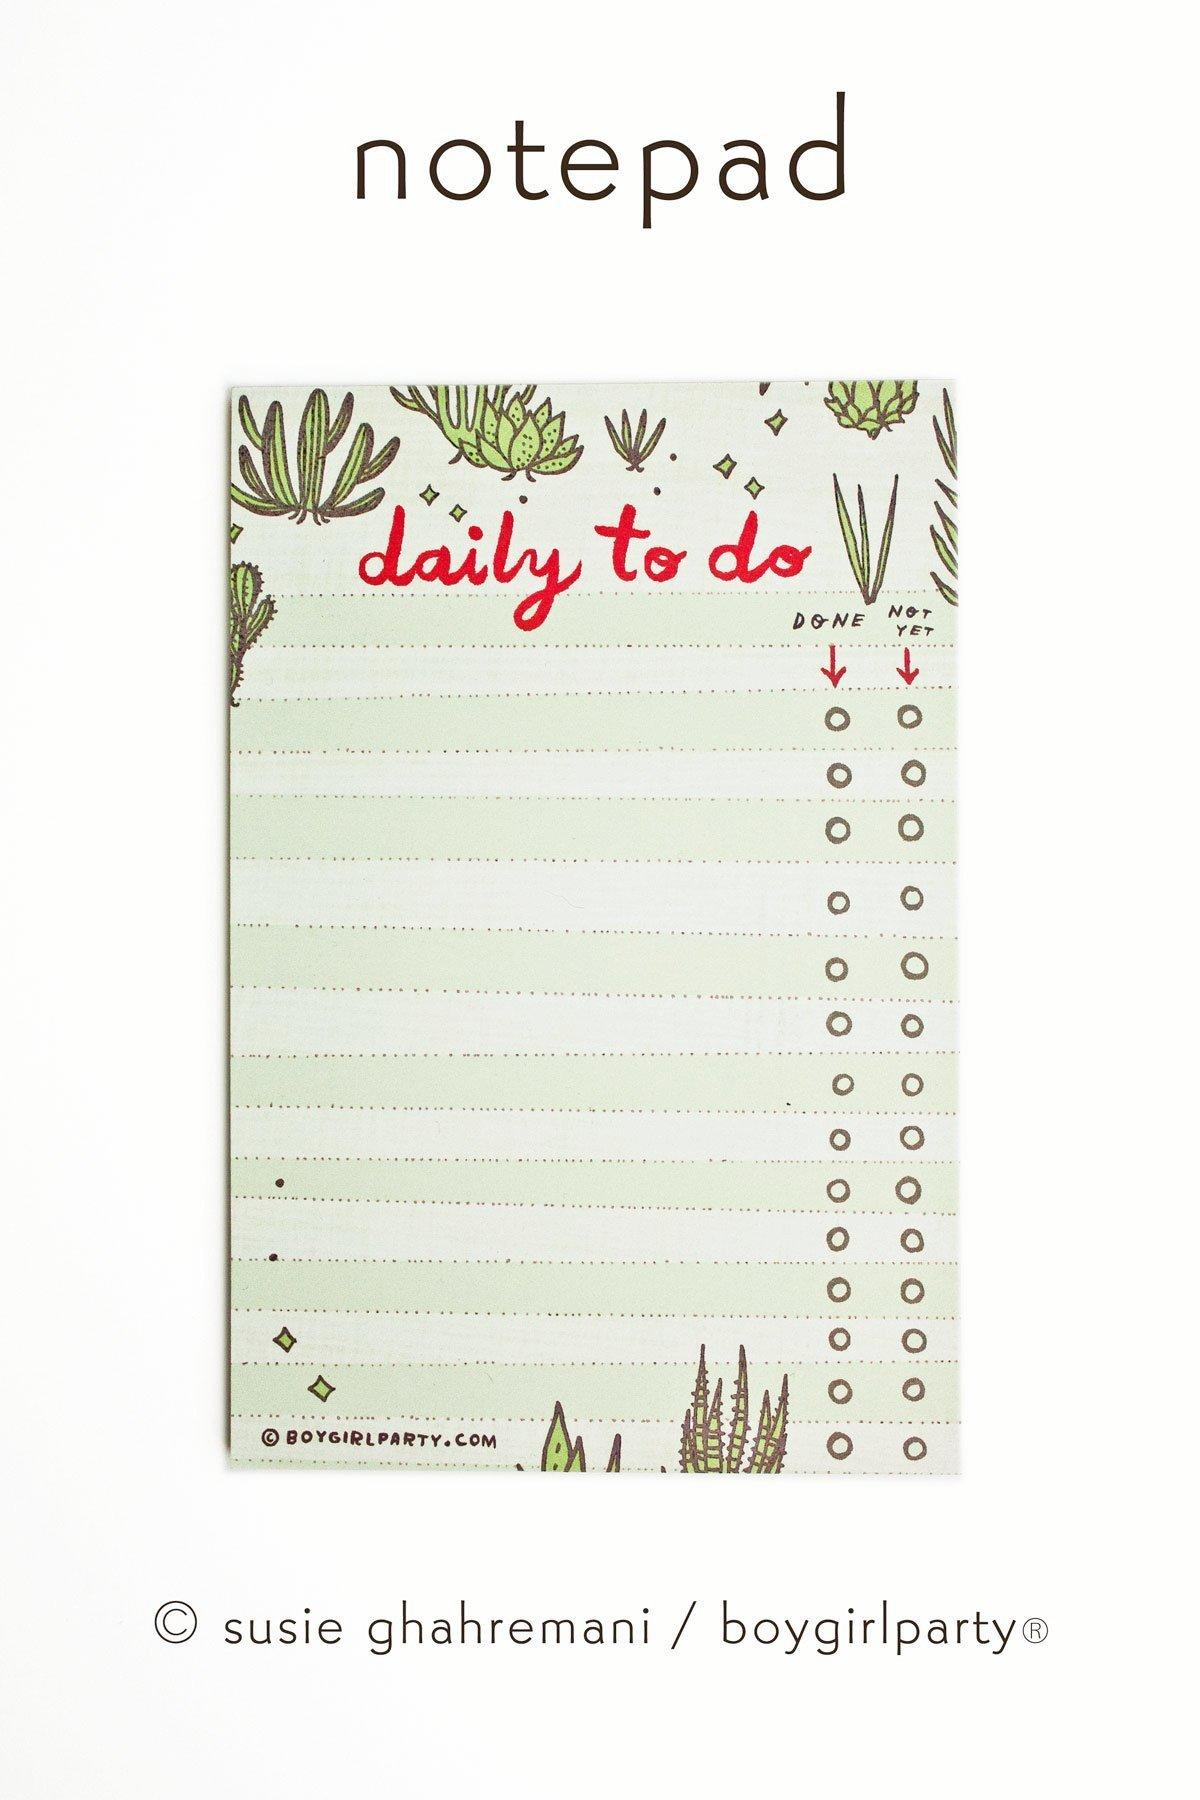 Image of Succulent To Do List - Cactus Notepad - Daily To Do List Notepad by boygirlparty